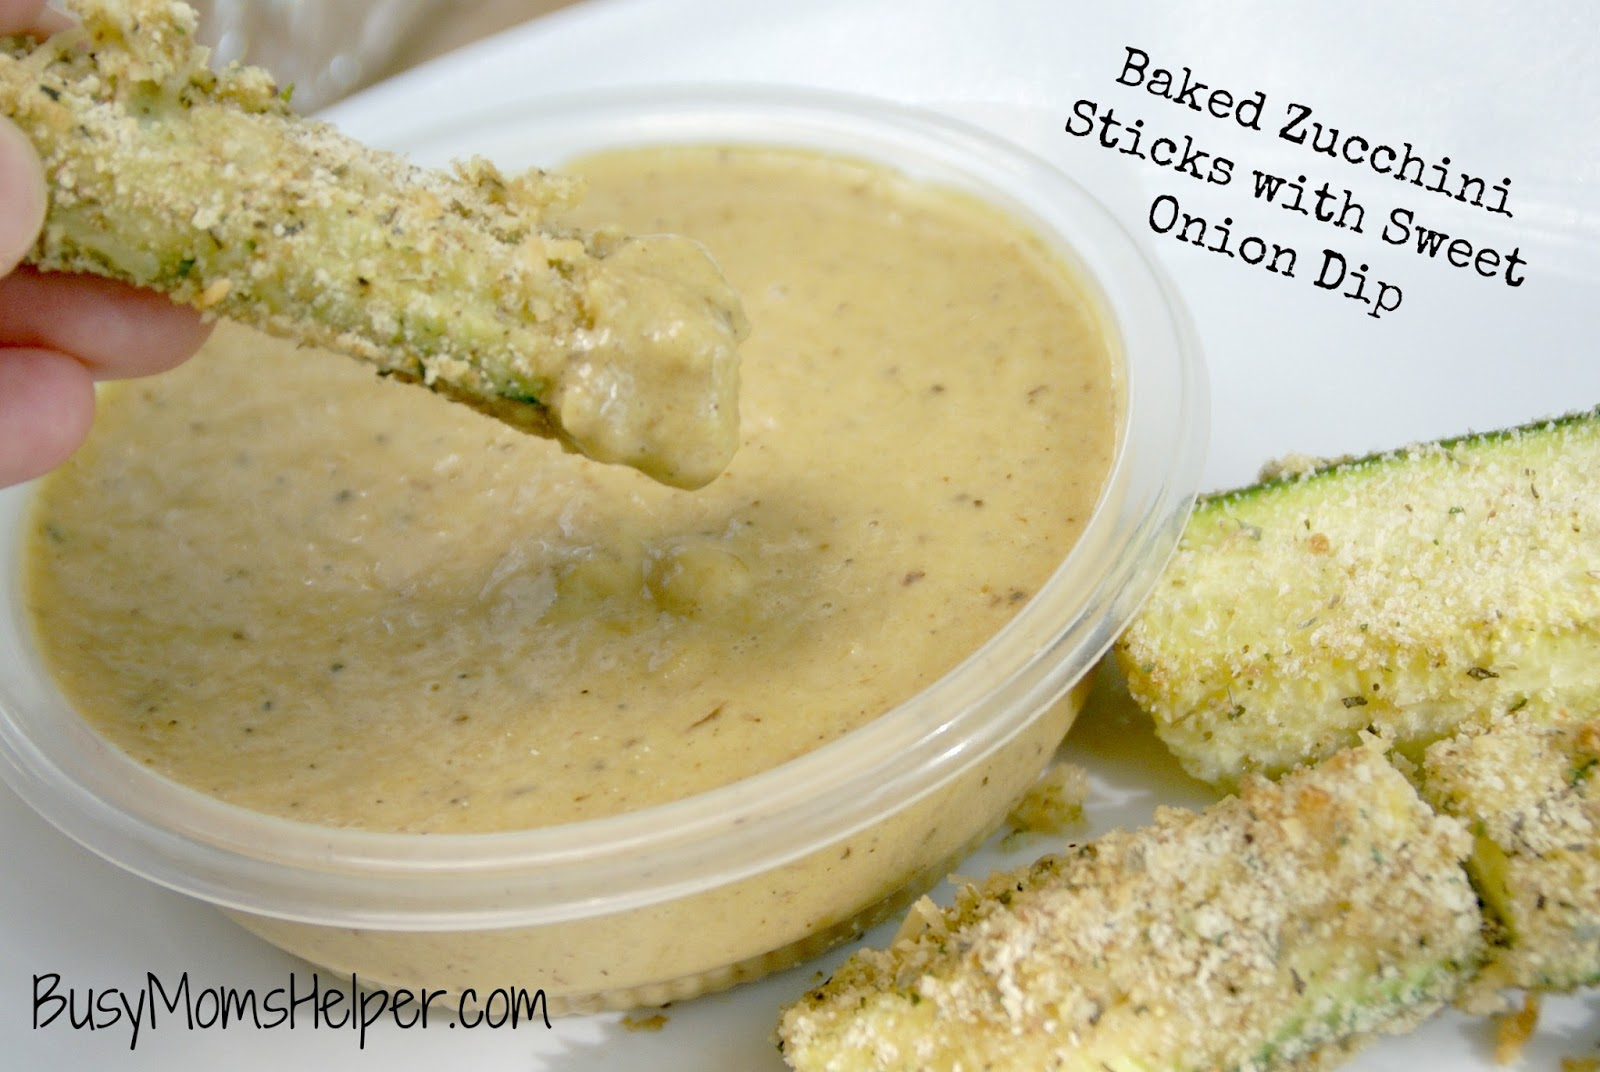 ... about 3 dozen zucchini sticks and 1 1/2 cups of the sweet onion dip